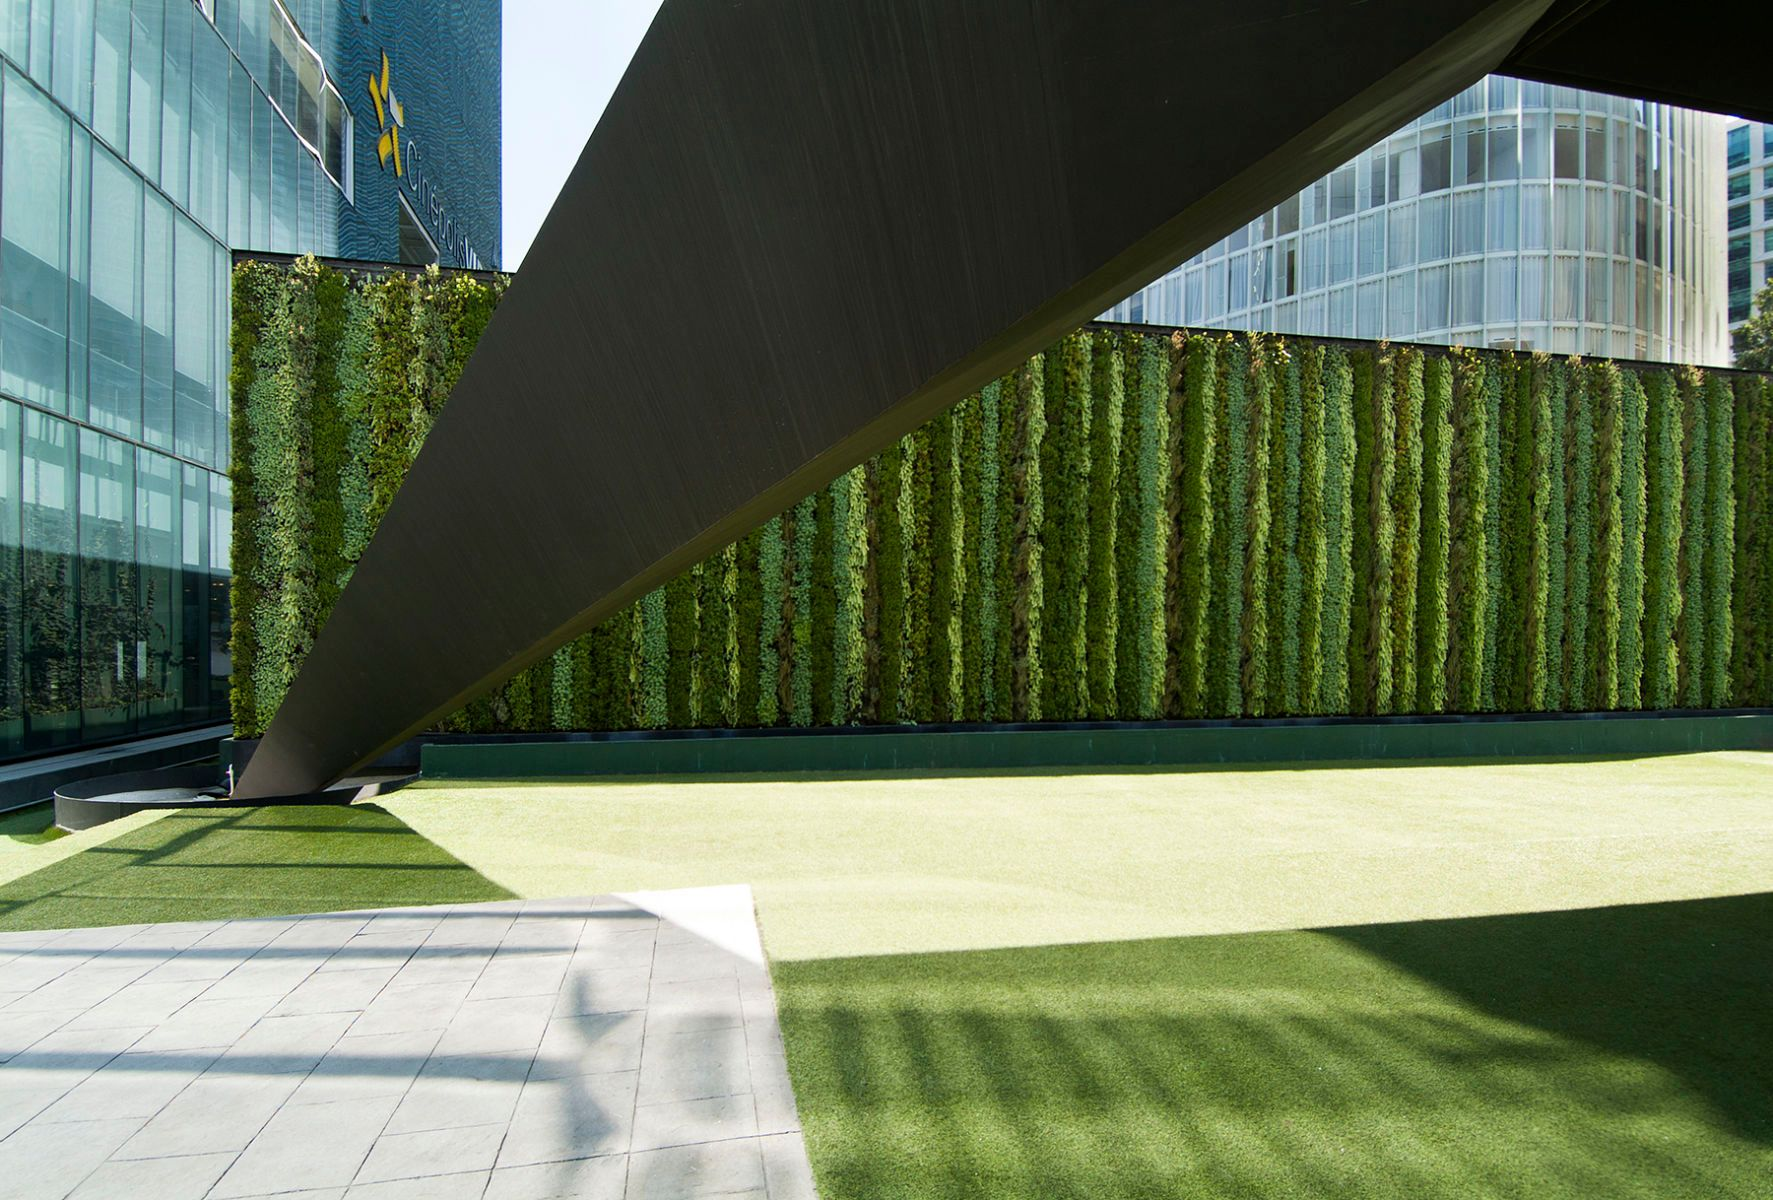 Plaza Carso in Nuevo Polanco, Mexico City